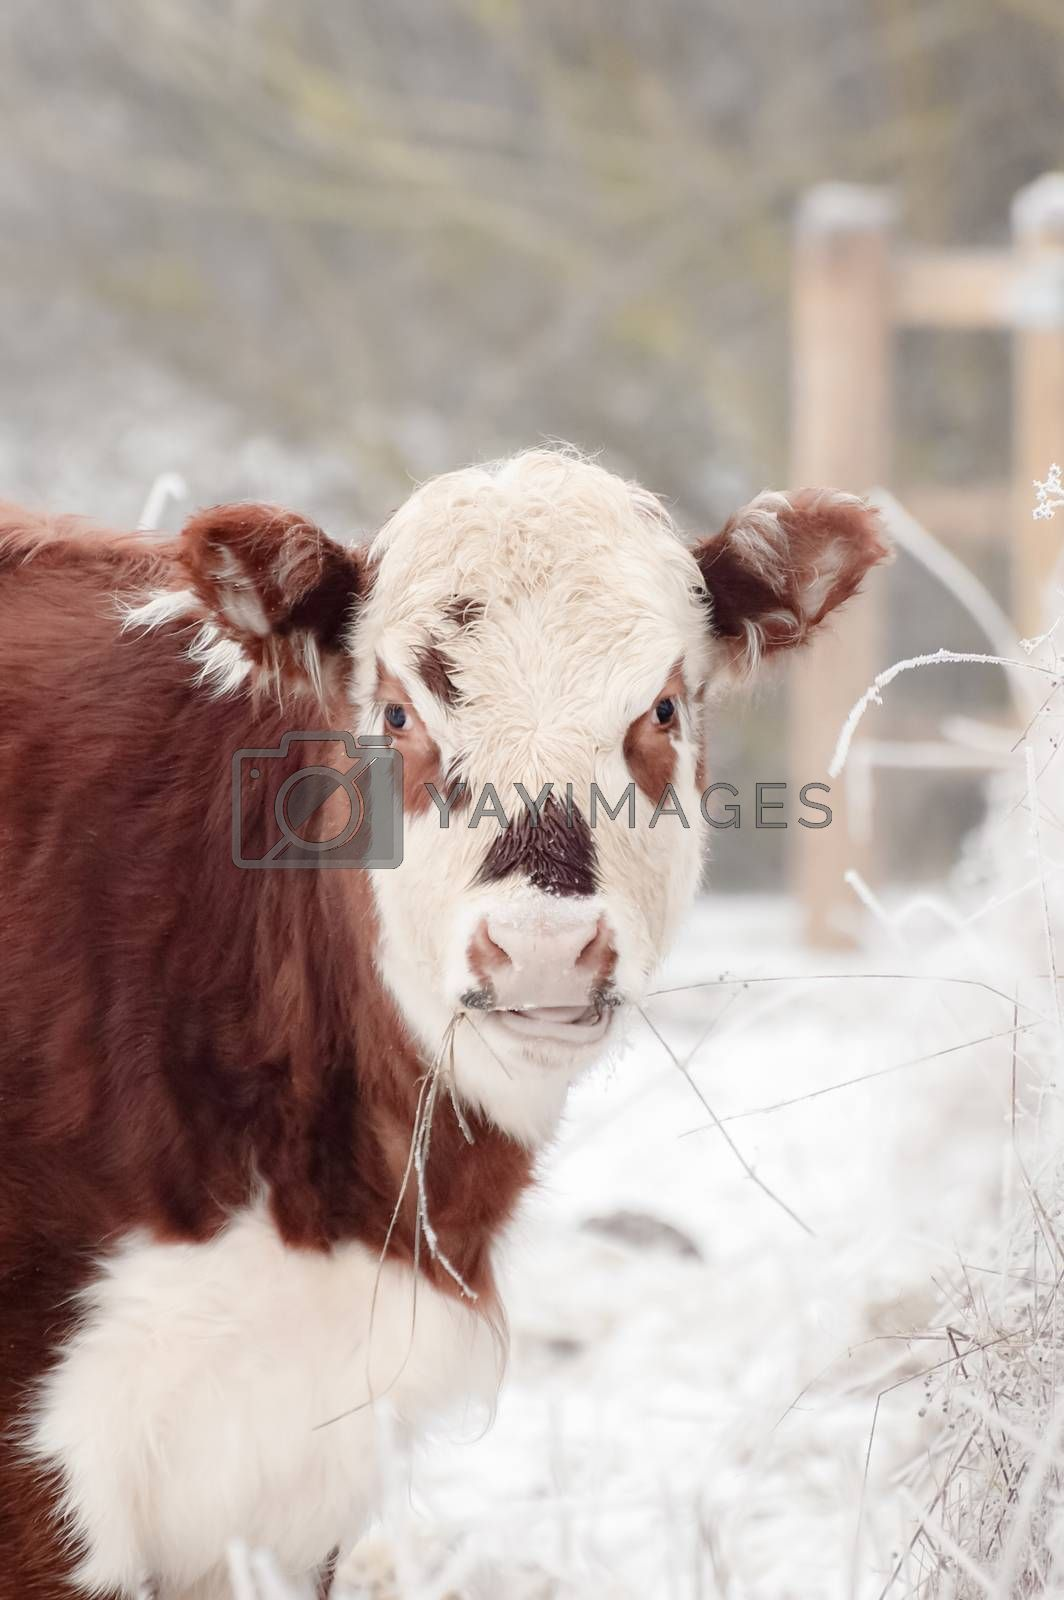 Royalty free image of cow grazing by nelsonart